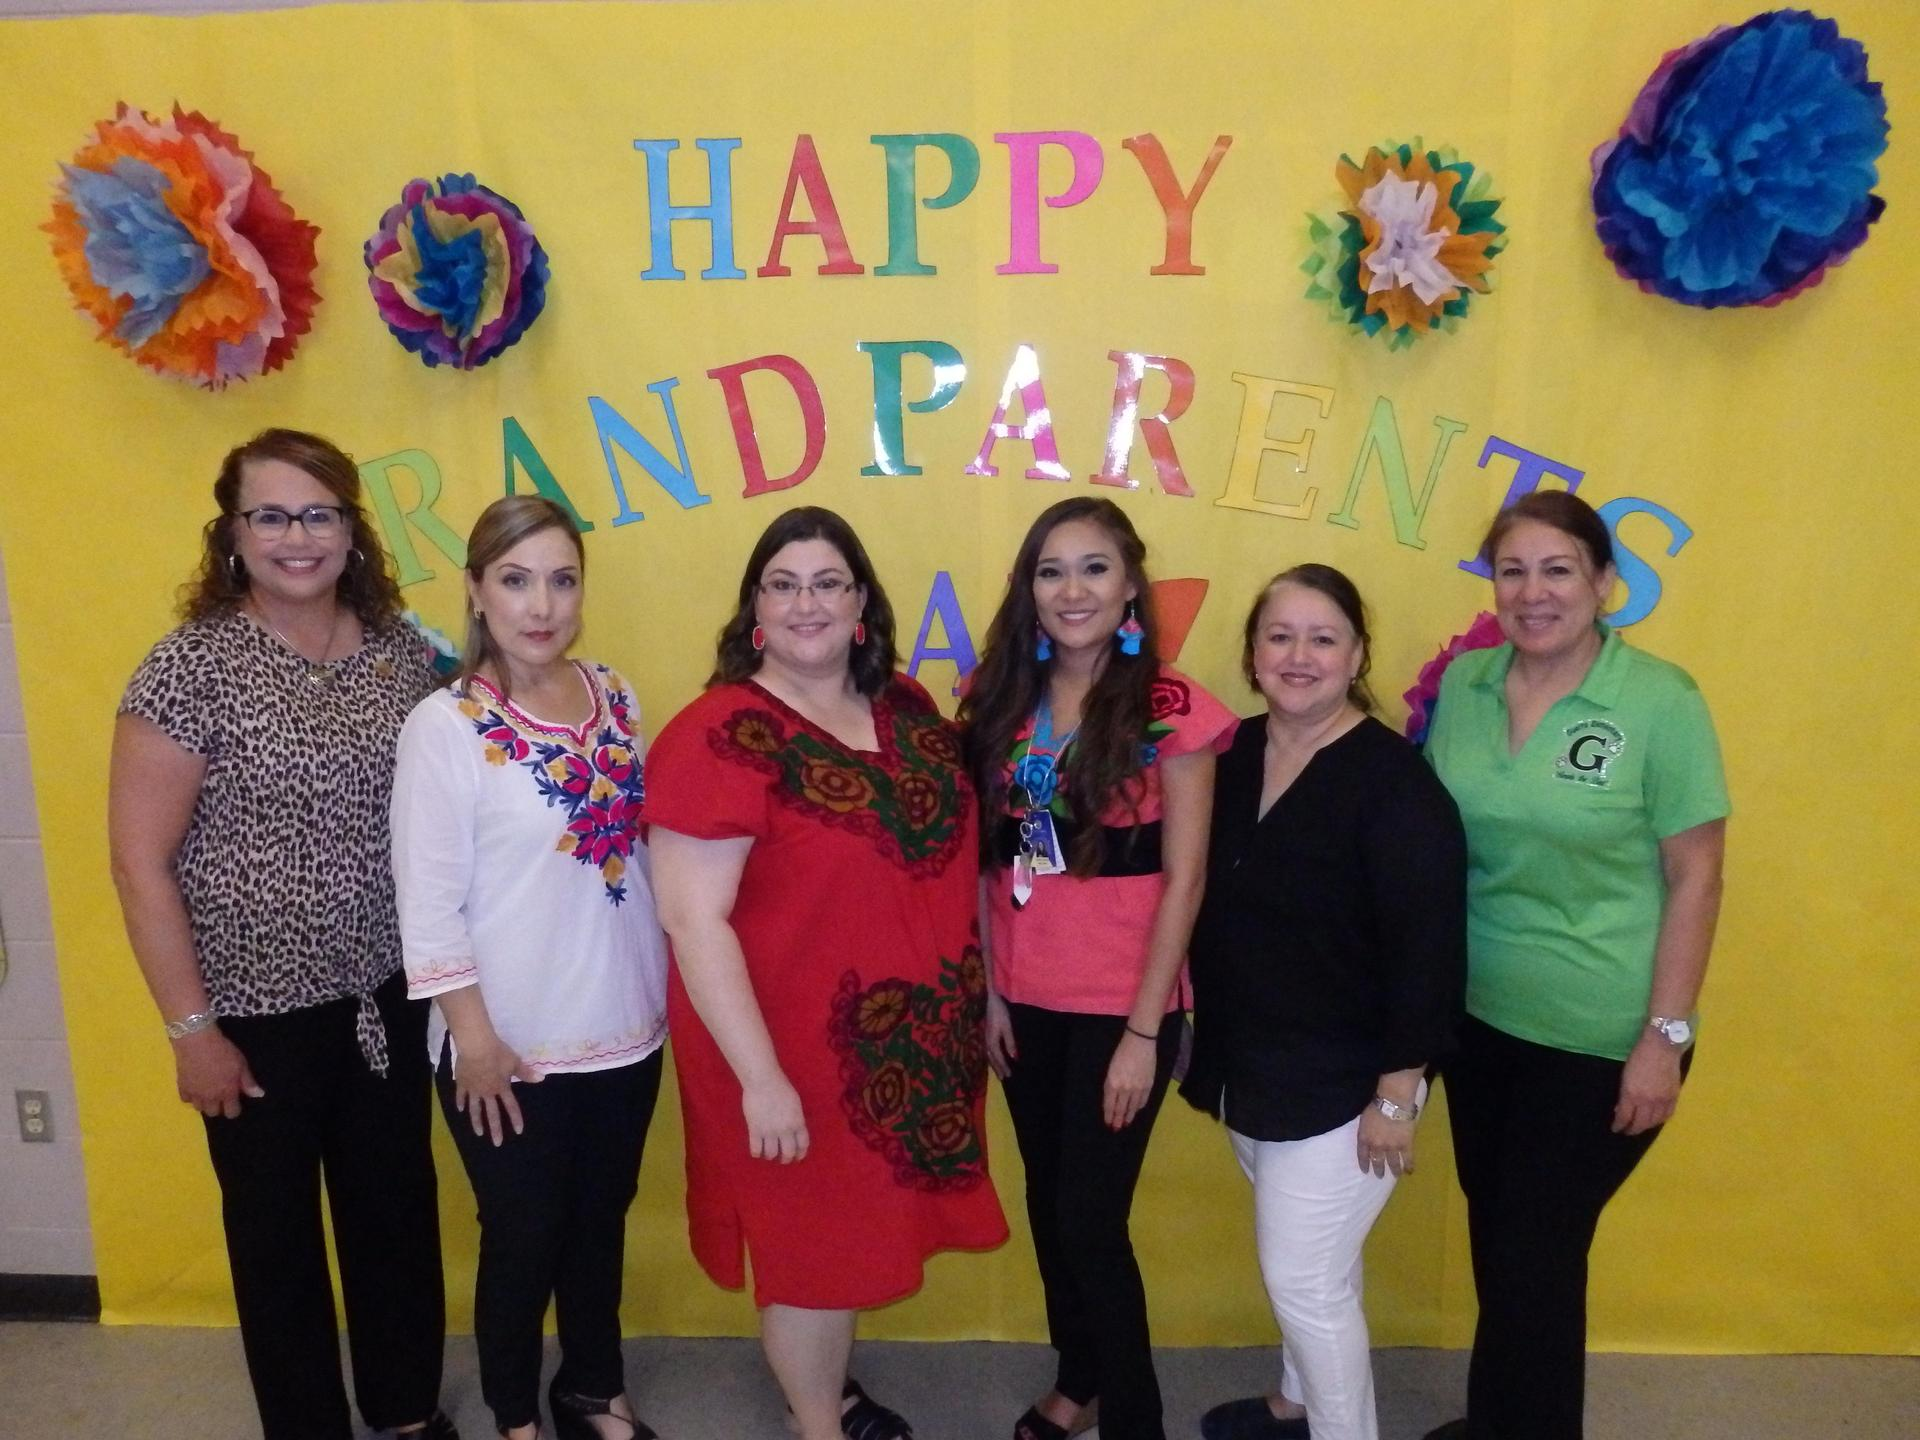 Principal and kinder teachers and paraprofessionals pose for picture